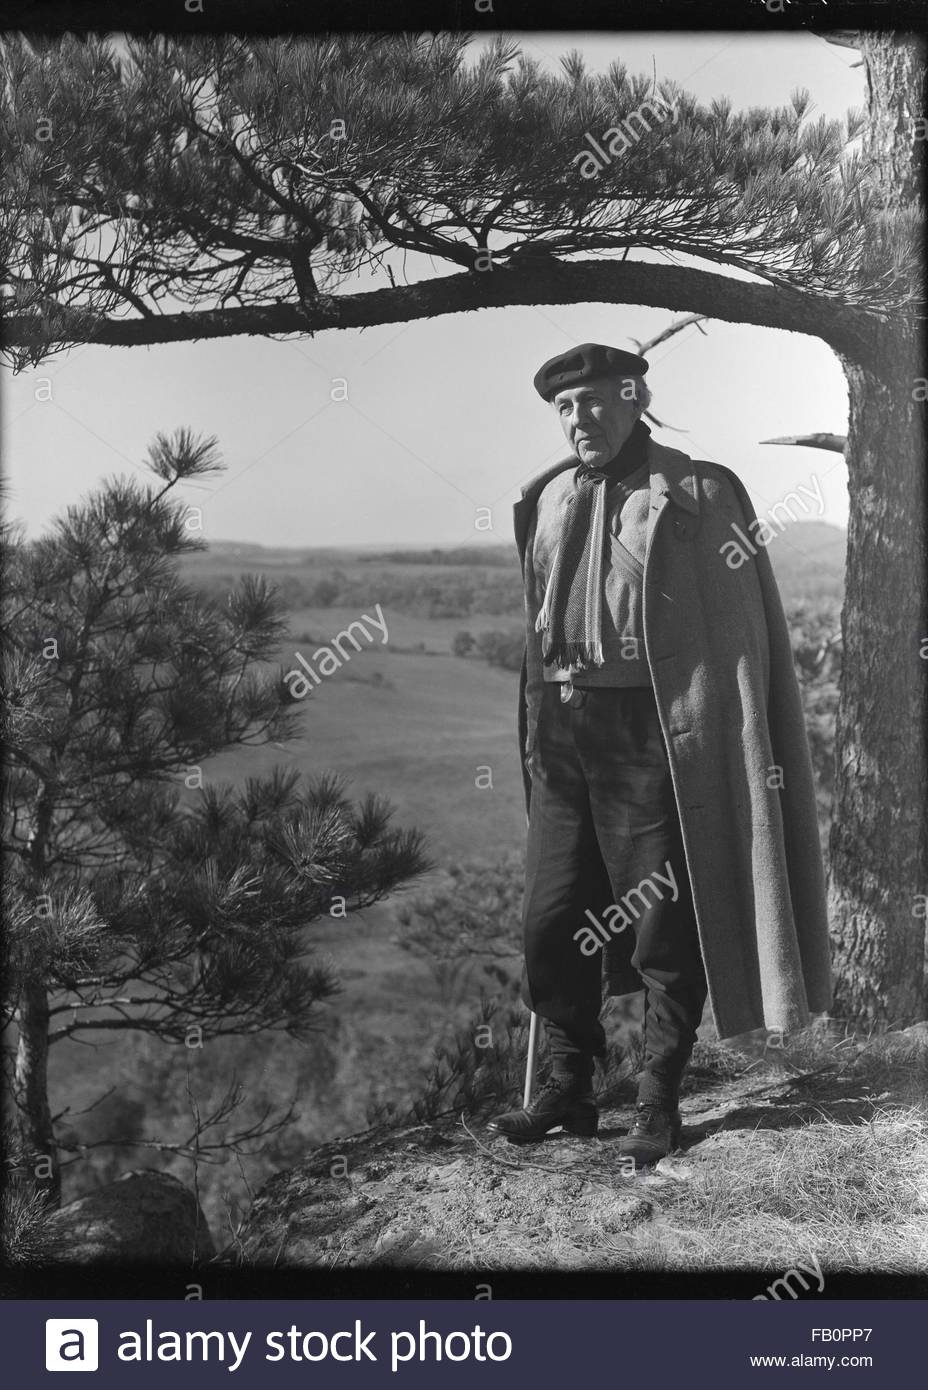 Portraits of Frank Lloyd Wright and others at Taliesin East [graphic], 1937 Dec. Frank Lloyd Wright alone. - Stock Image